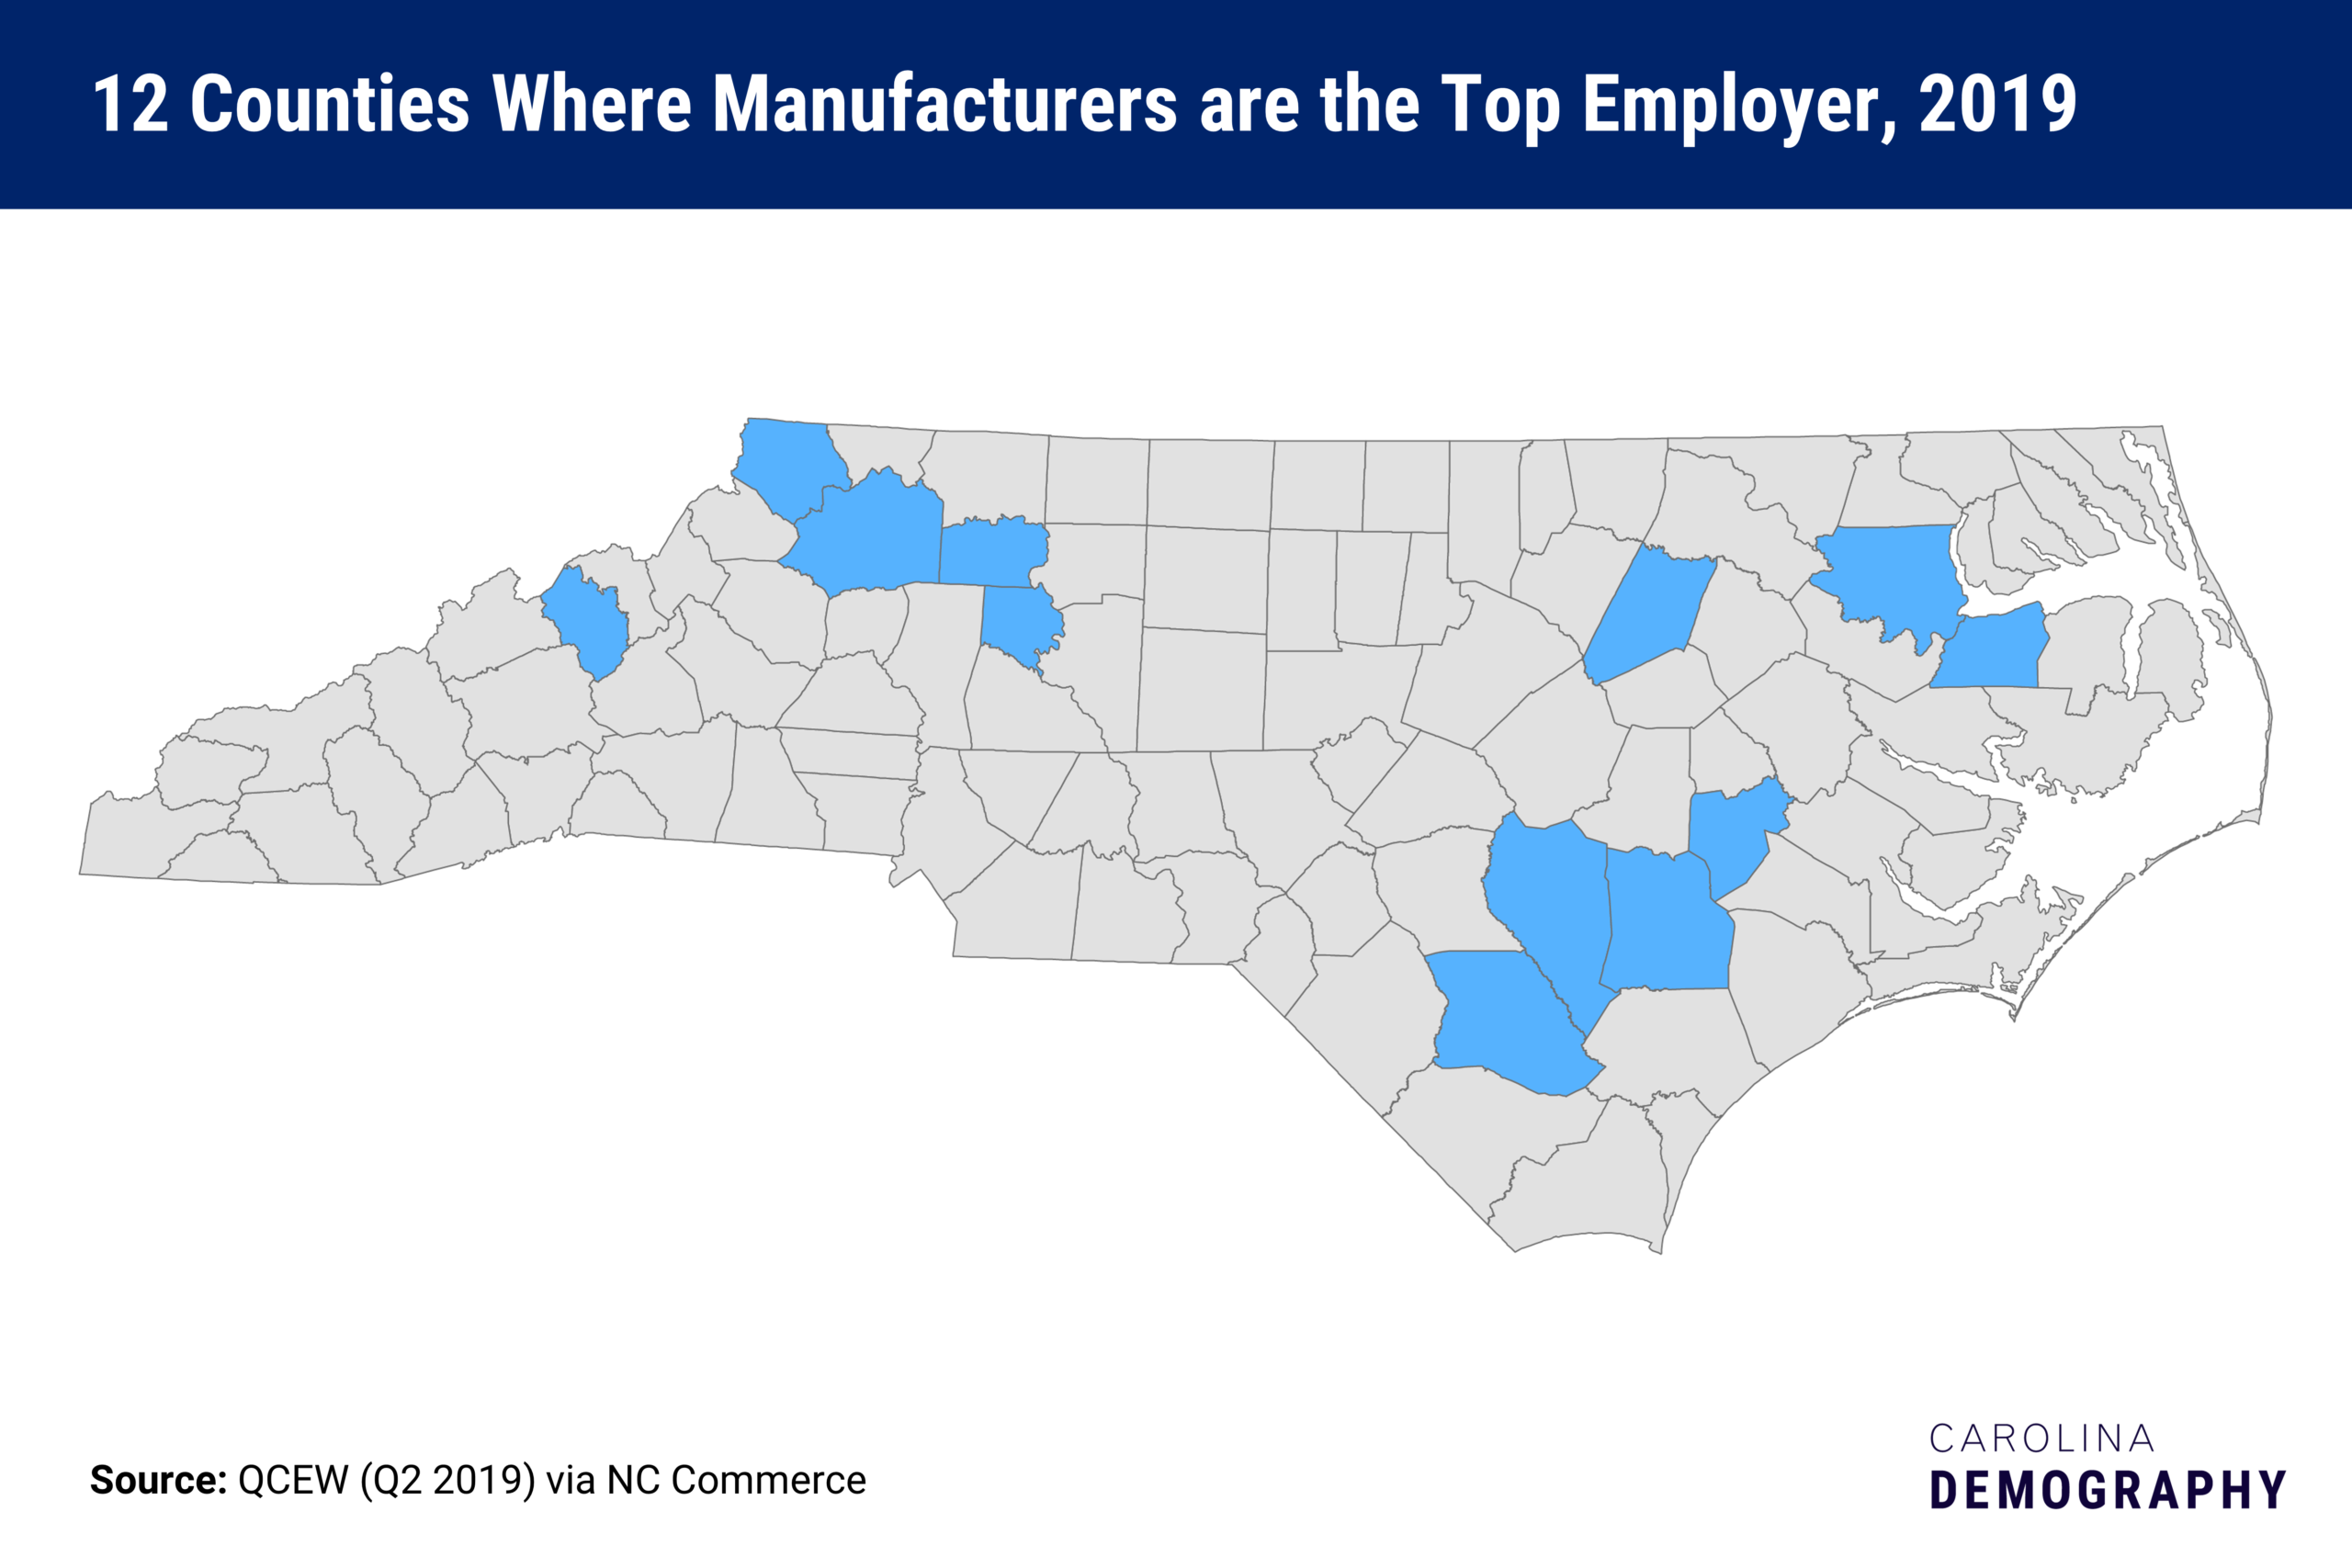 12 counties where manufacturers are the top employer, 2019